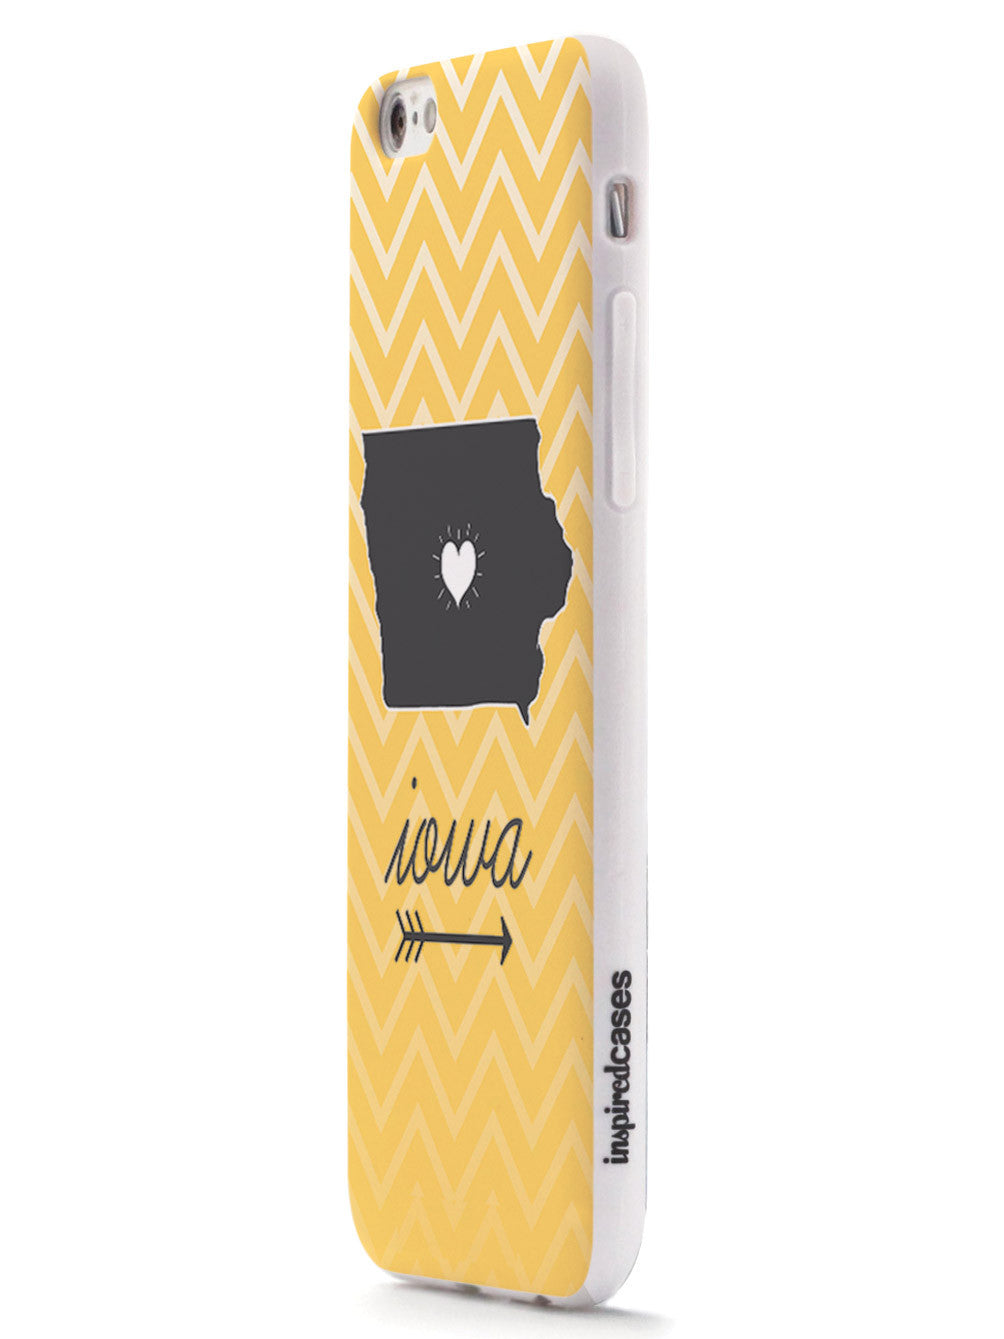 Iowa with Chevron Pattern Case